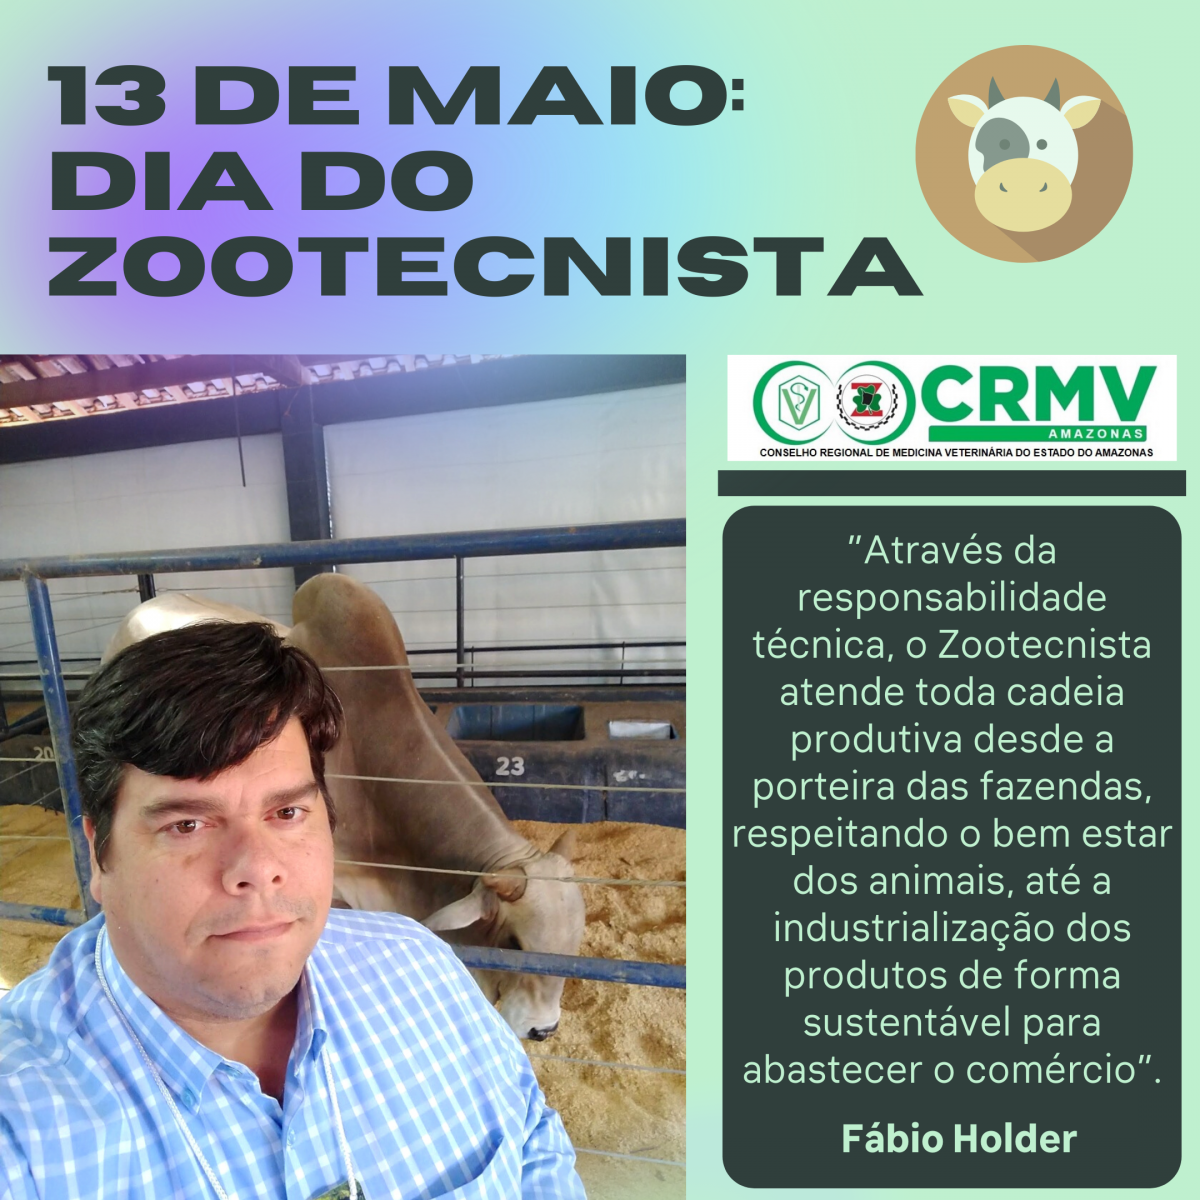 Dia do Zootecnista CRMV-AM